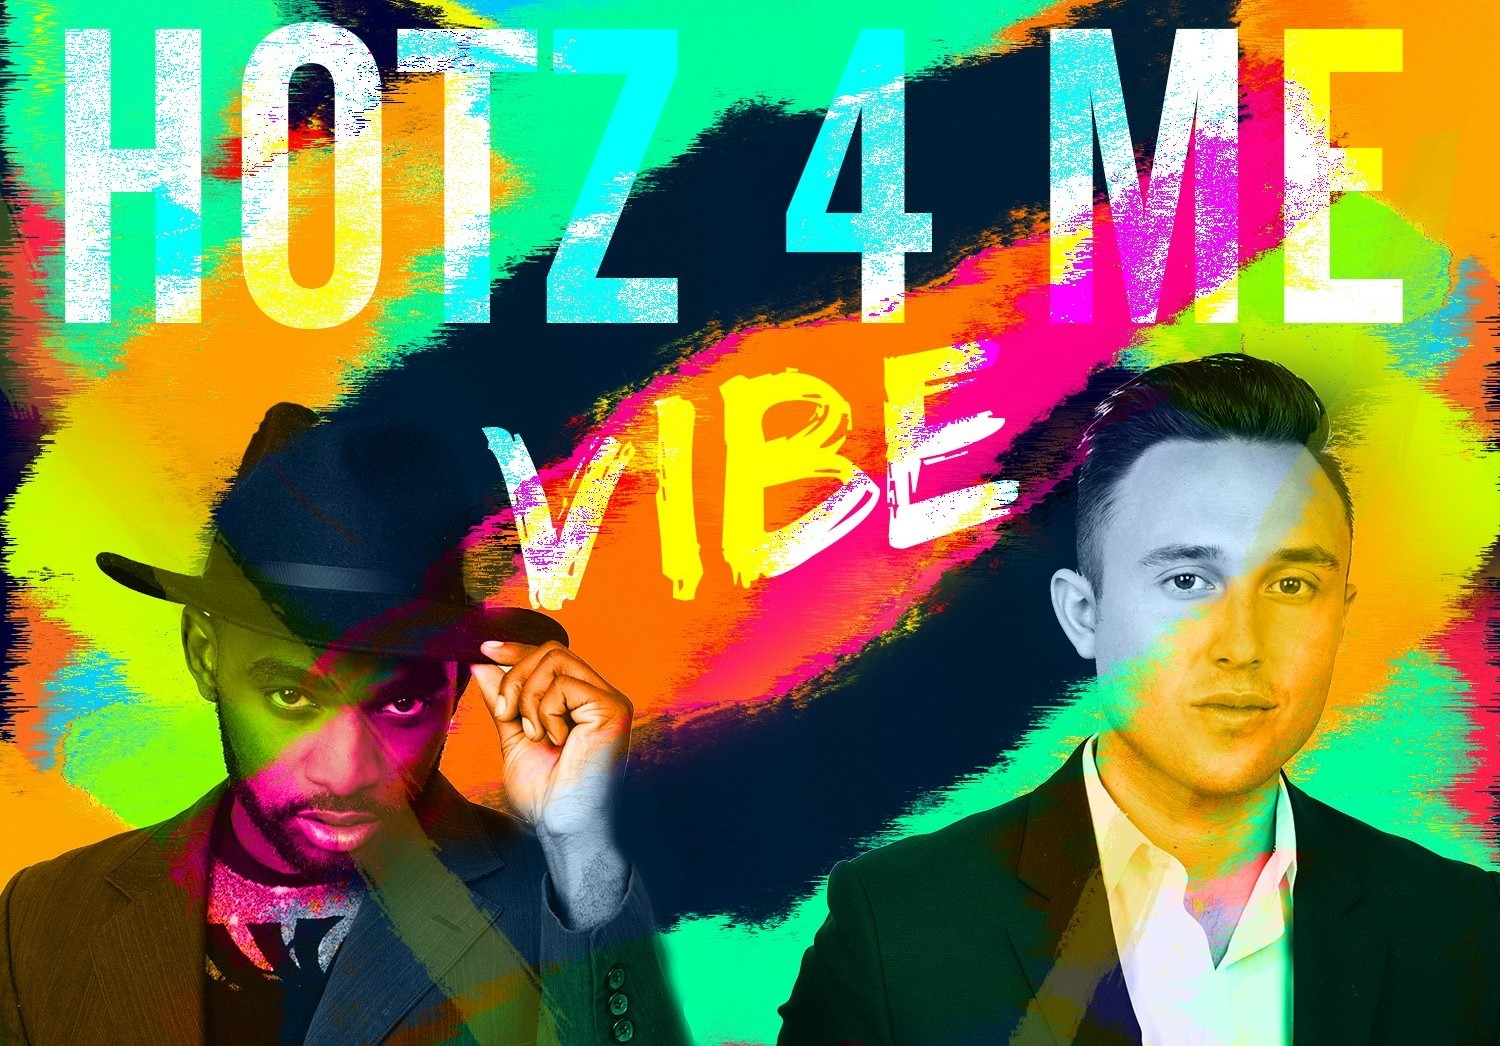 Vibe – Hotz4Me Release